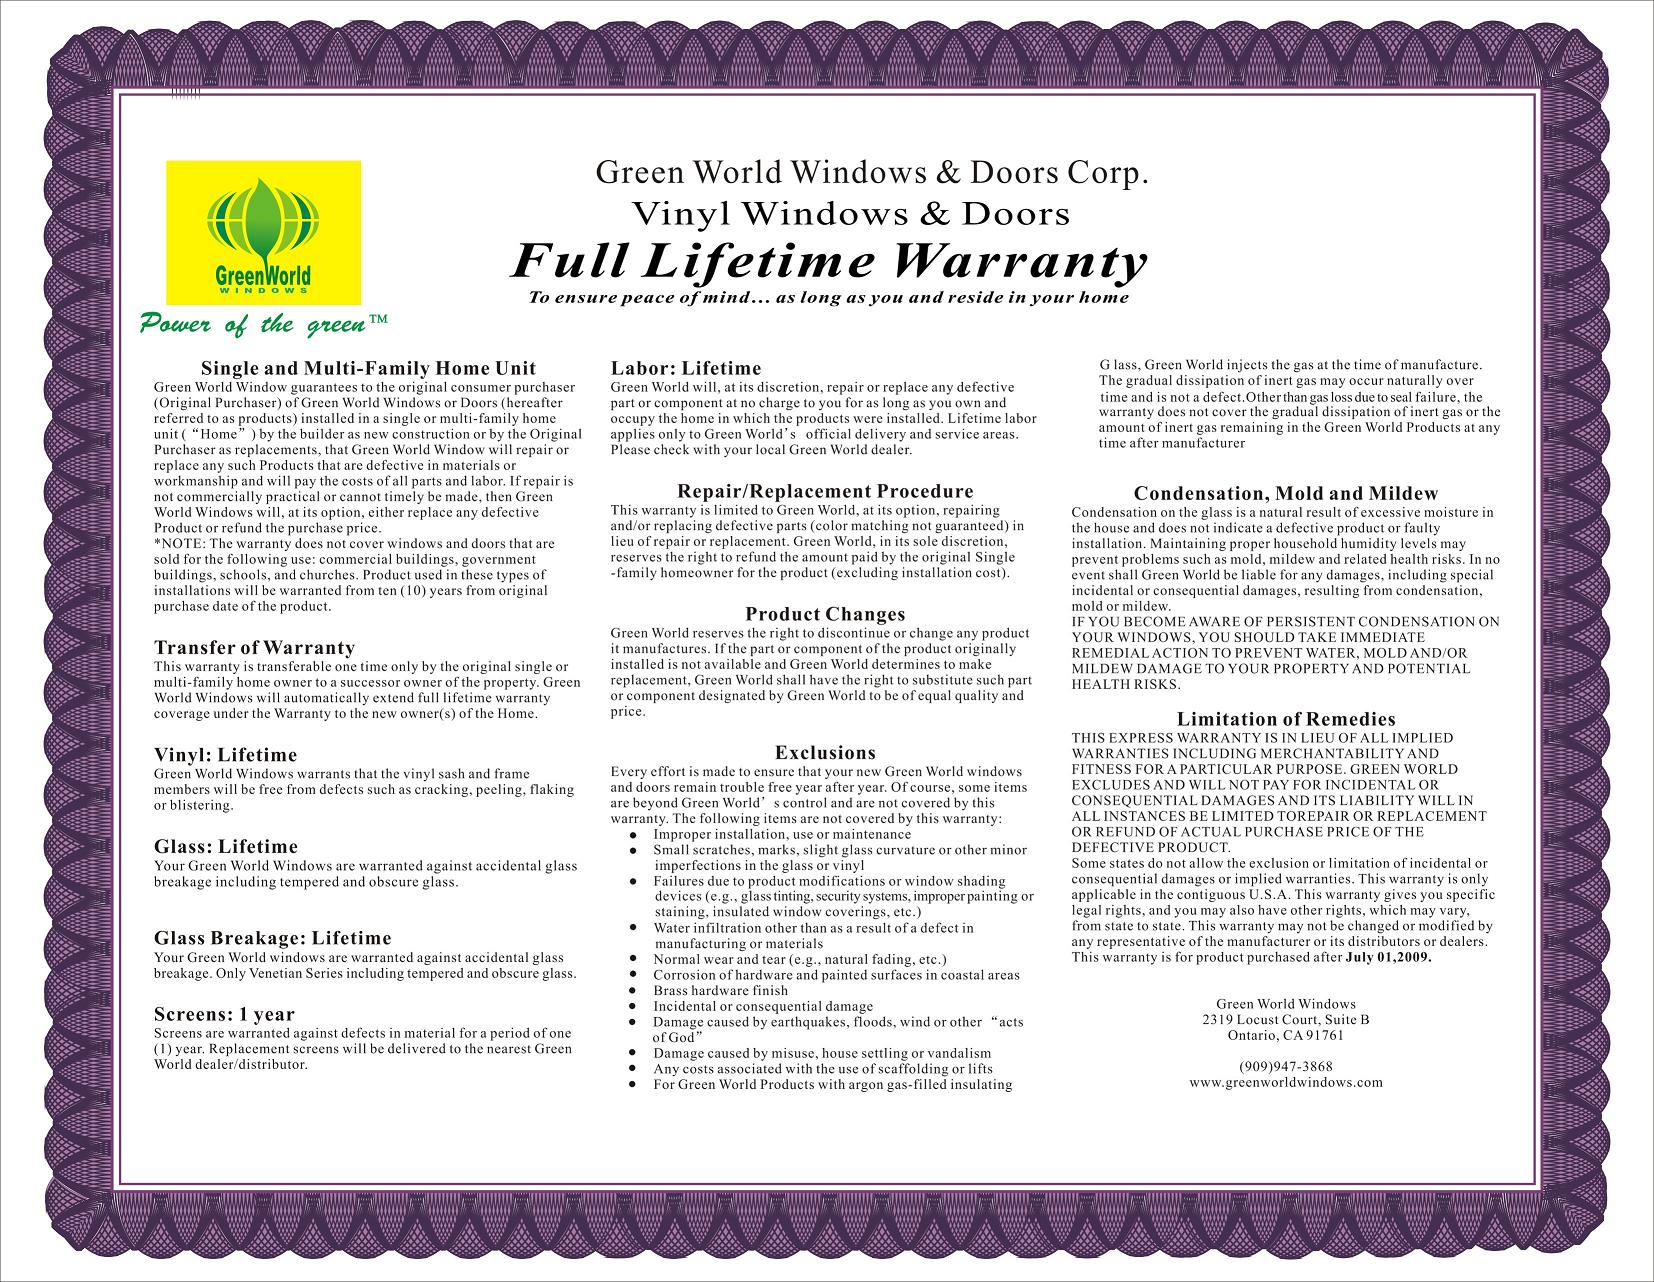 Green World Warranty Information